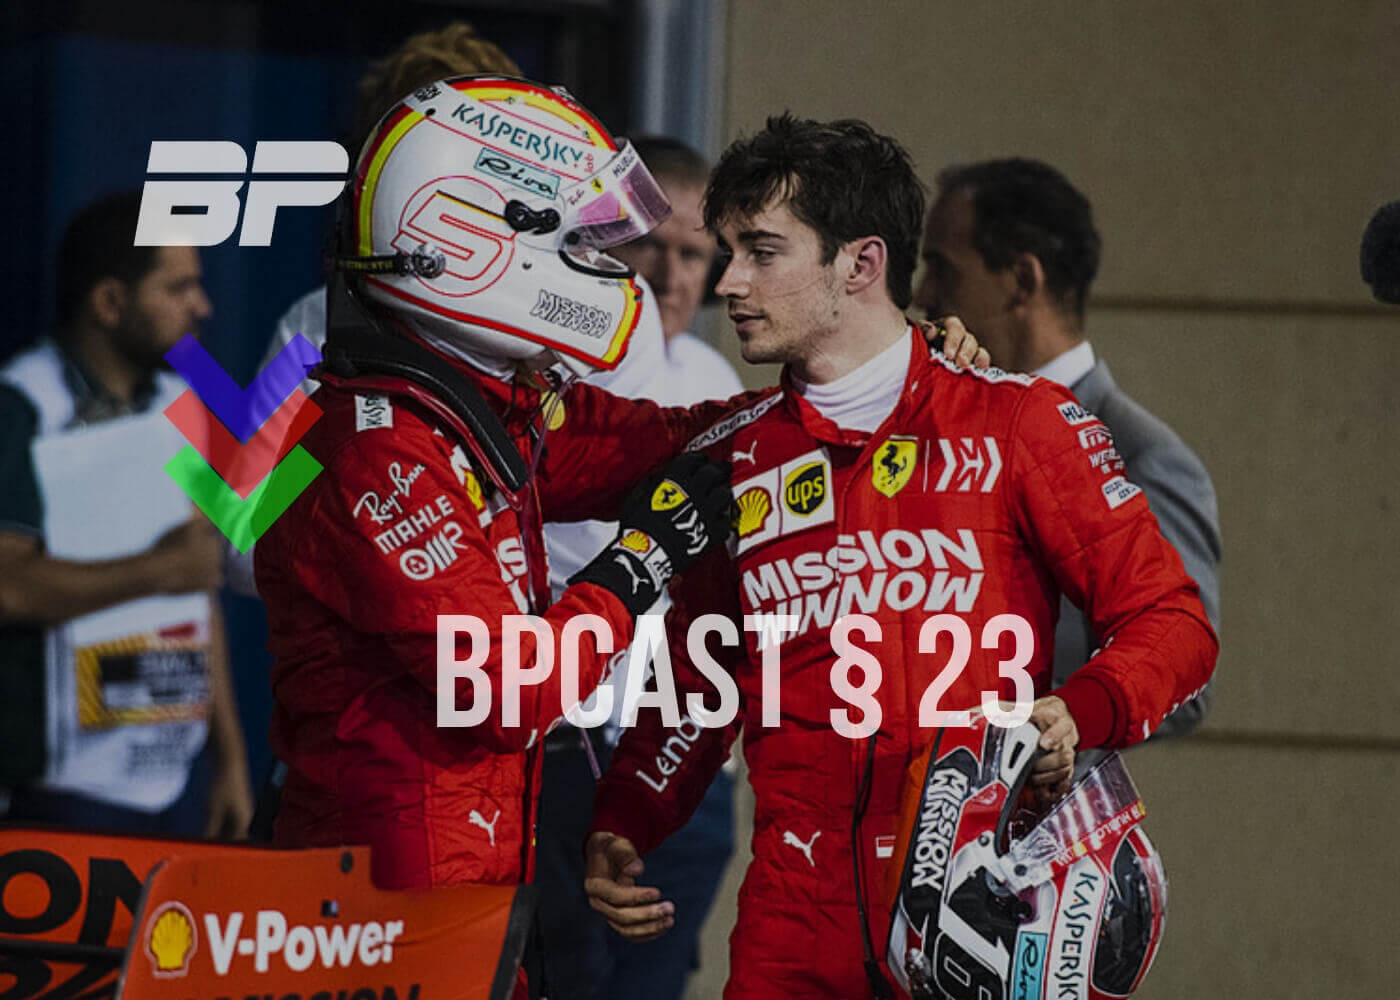 Foto de BPCast § 23 | Review GP do Bahrein de 2019